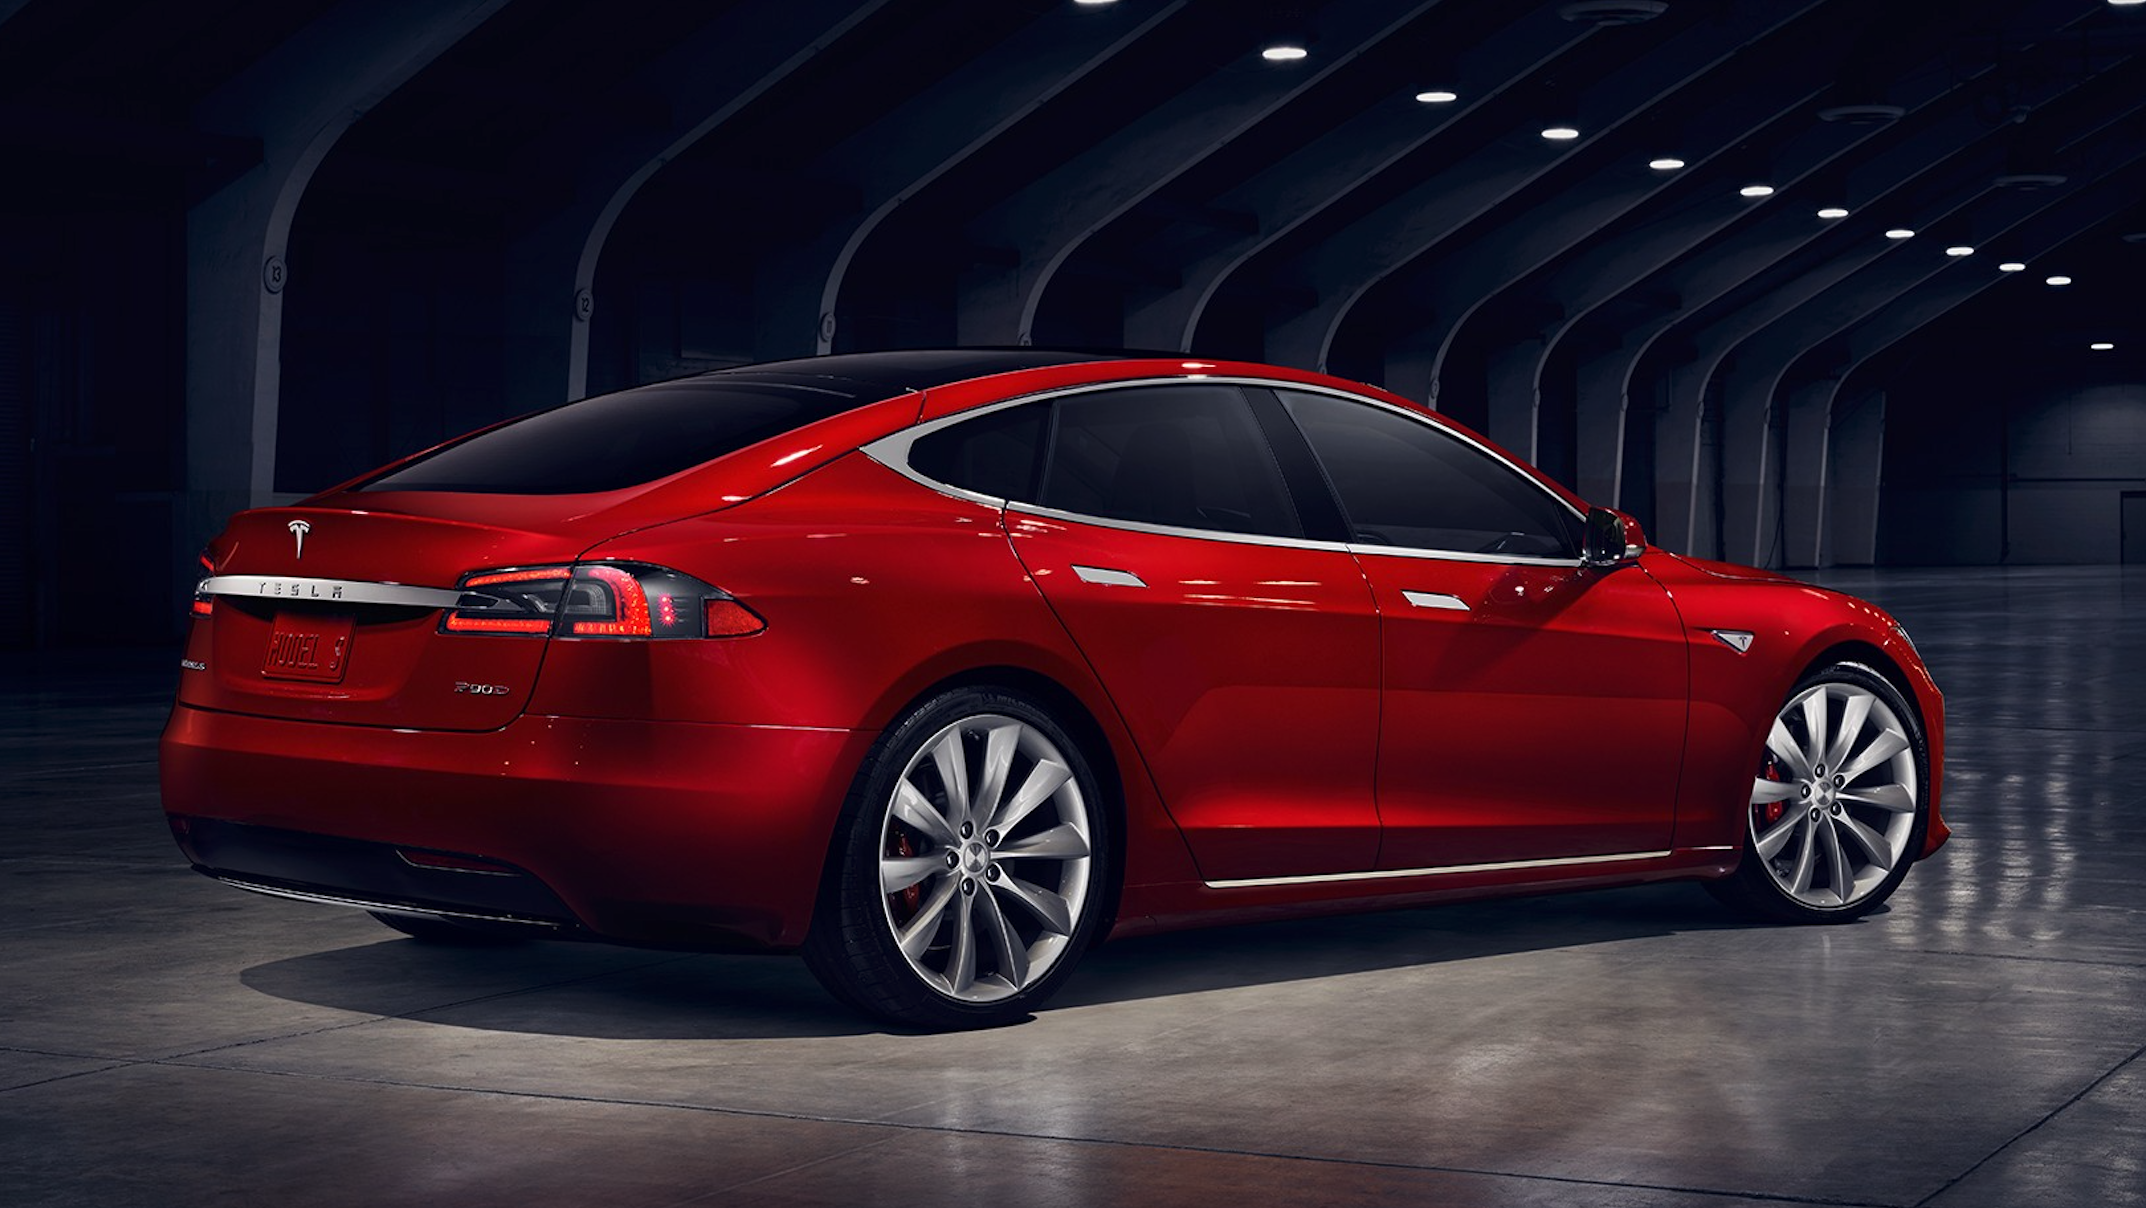 Reasons To Add Window Tint Your Tesla in Springfield, Missouri